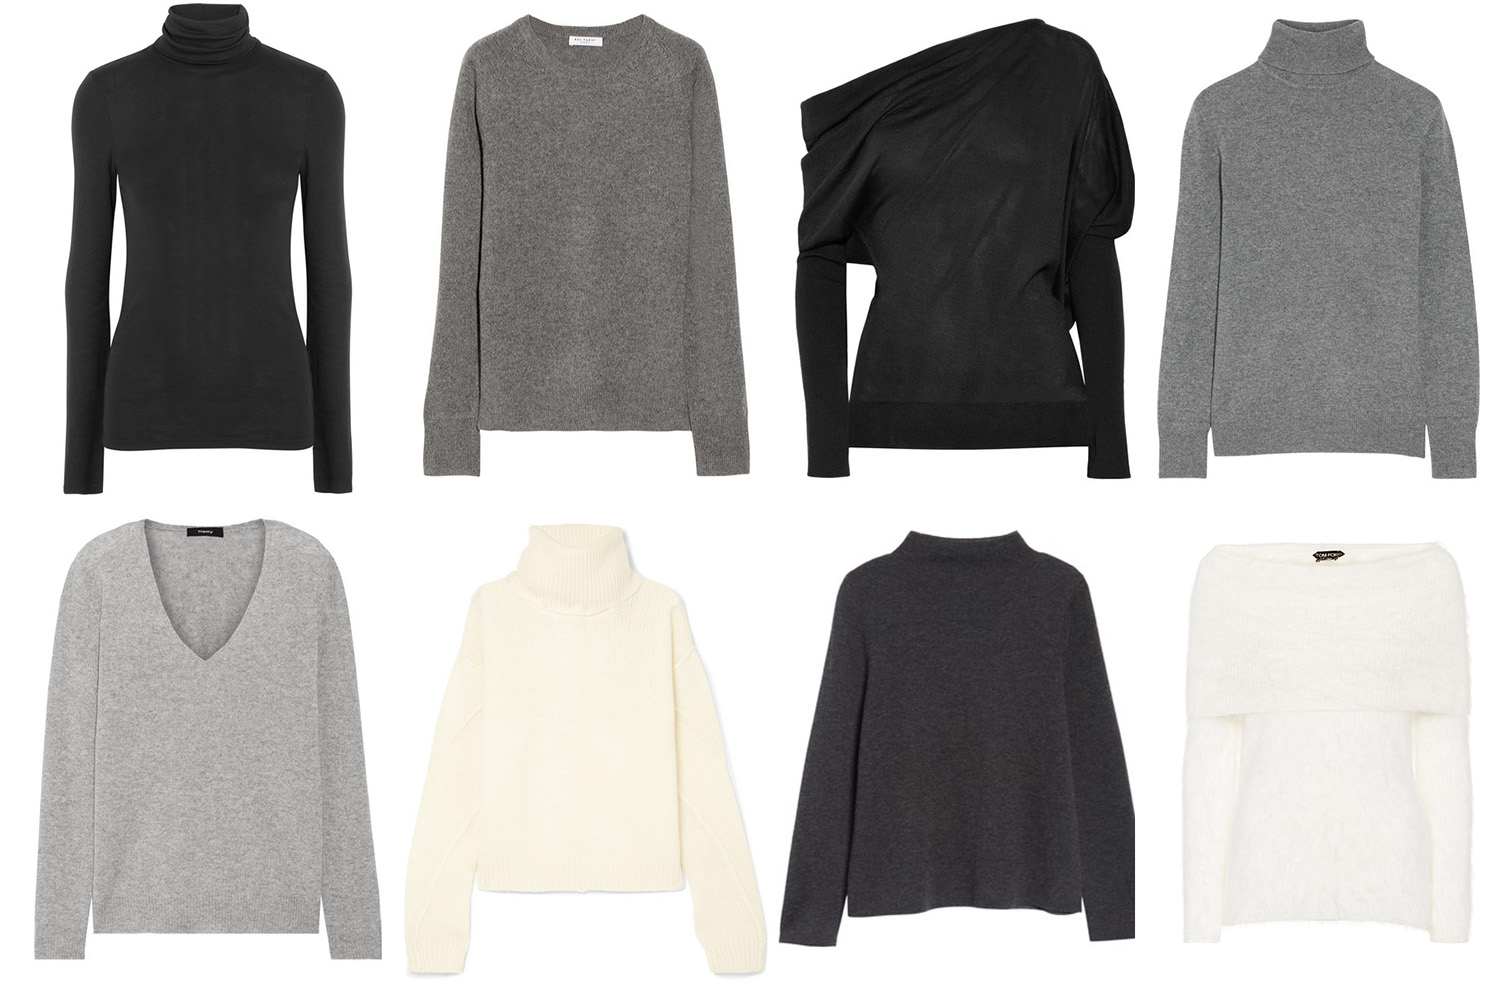 The Best Autumn Knitwear This Season